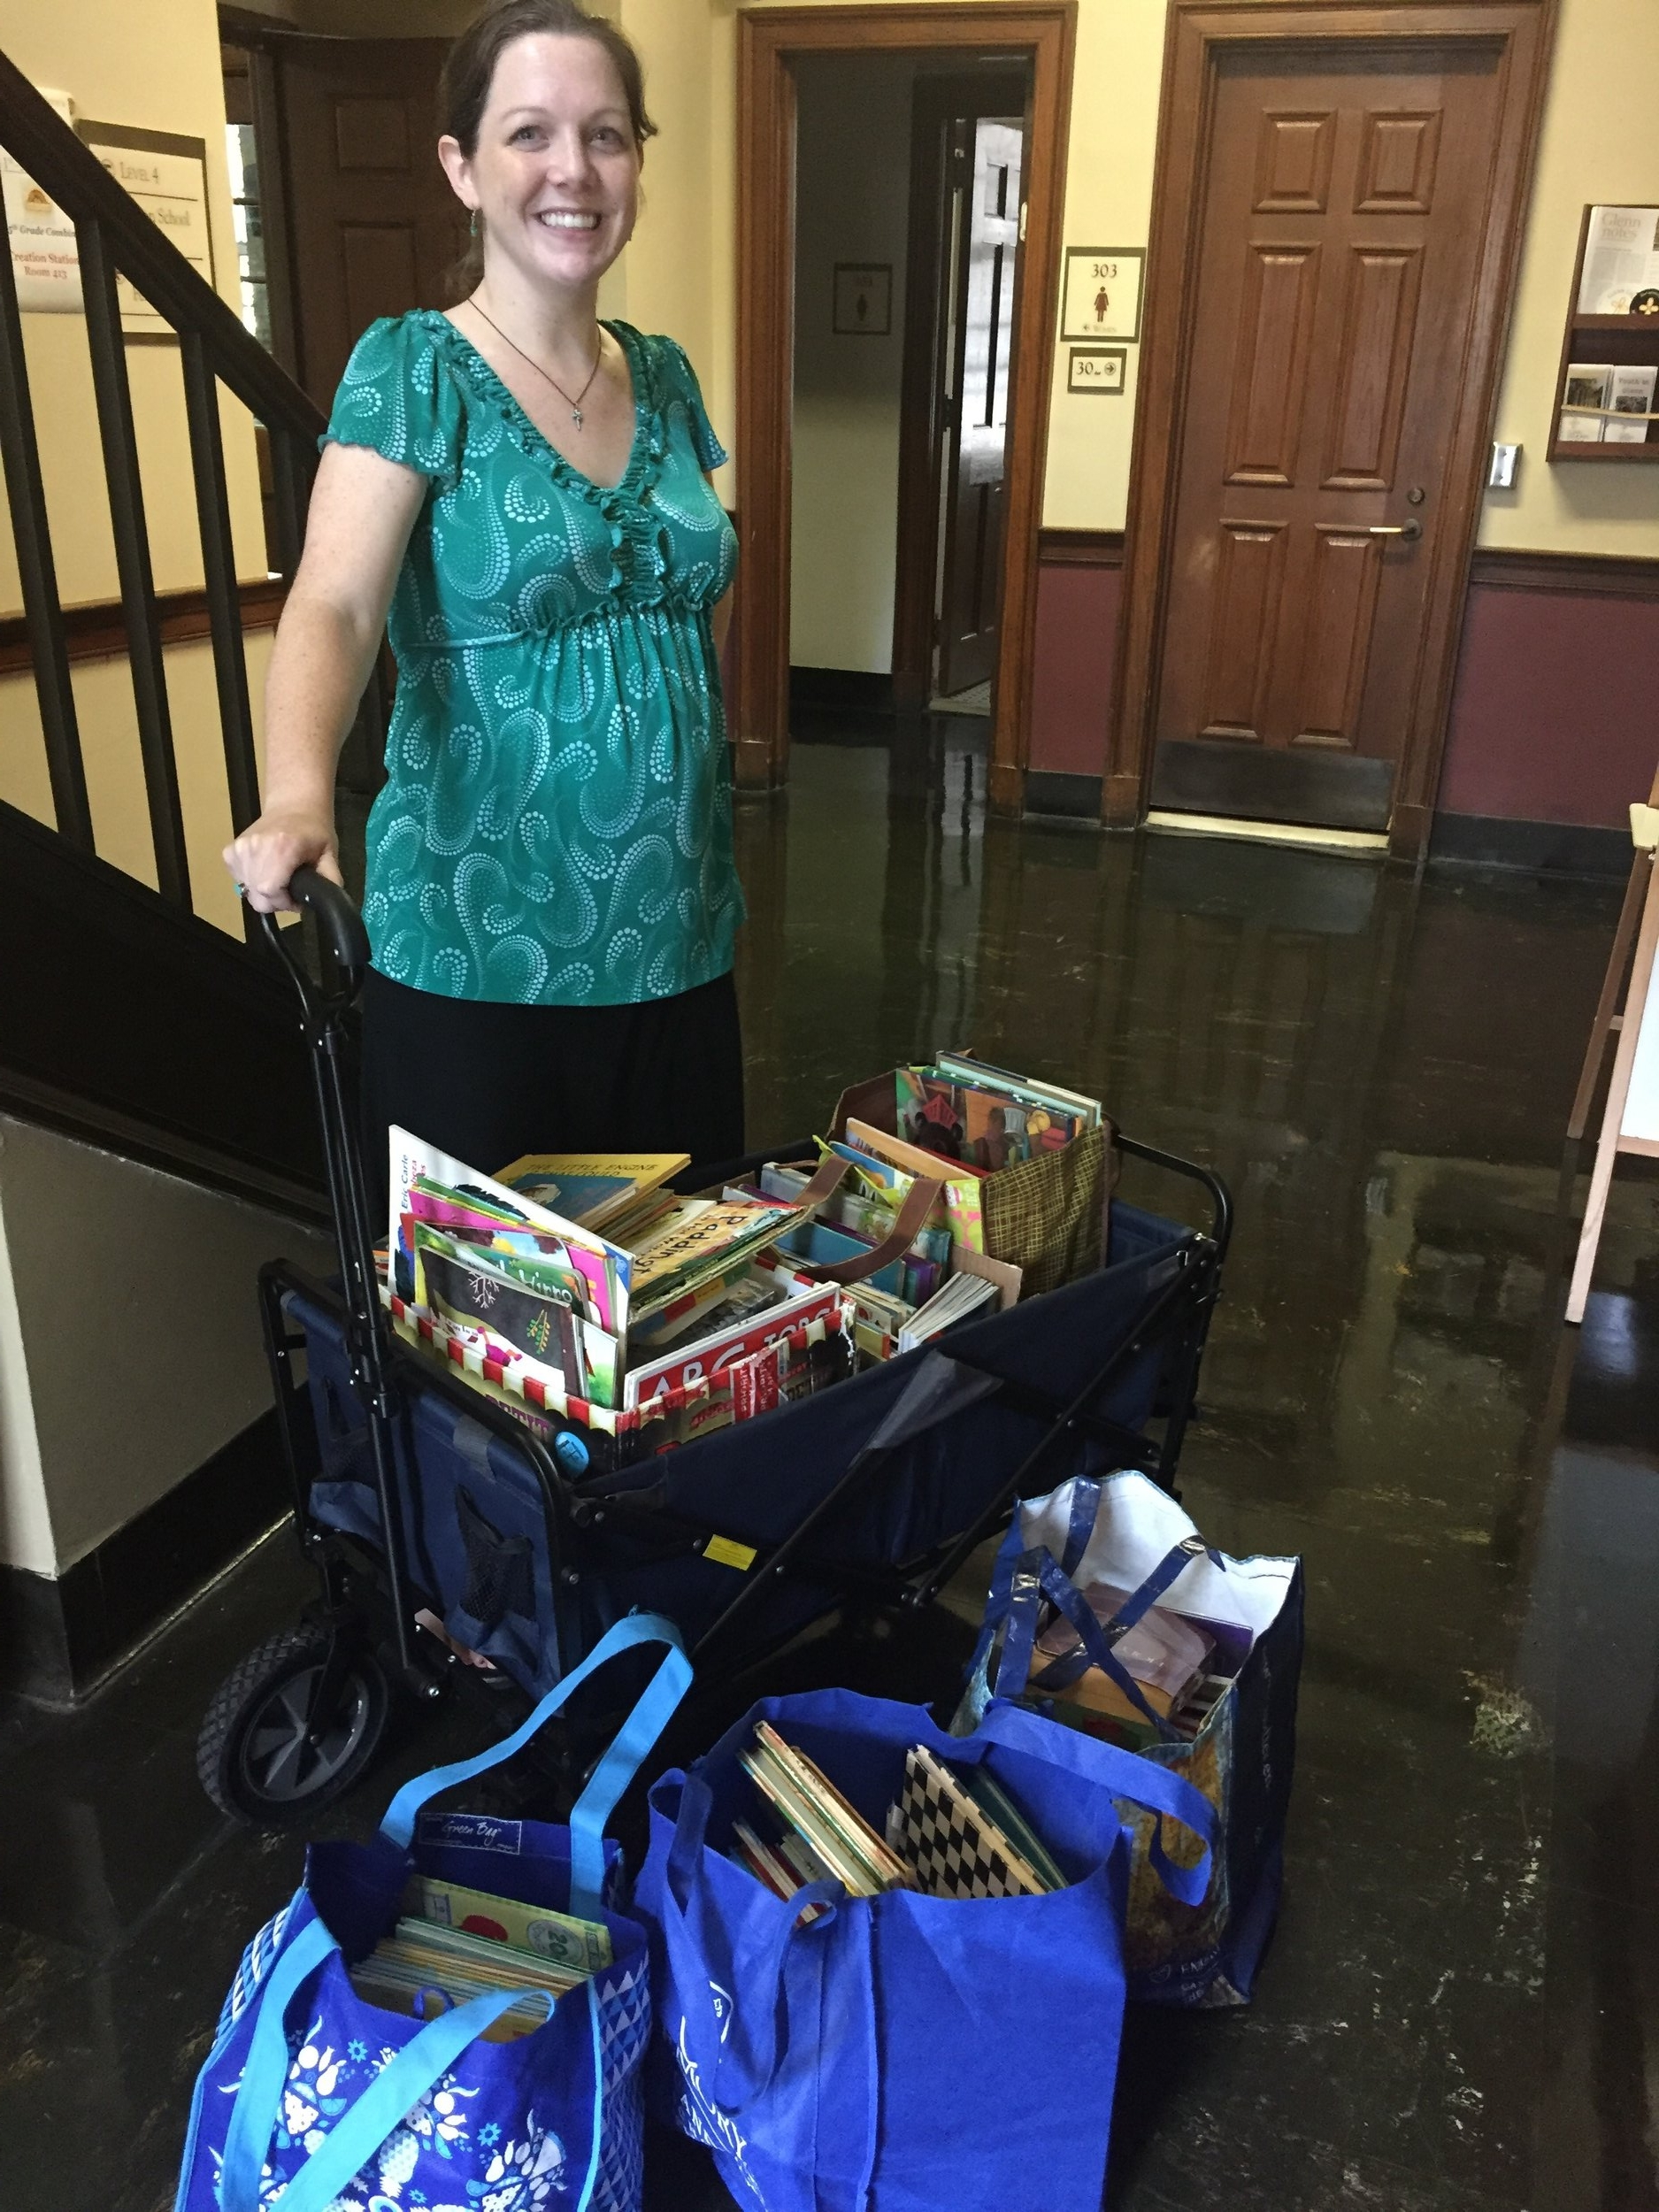 Once per month, volunteers from Glenn serve lunch for 85 women and children who visit the Women's Community Kitchen. You all took our plea to clean out your attics and playrooms to heart!We restocked their book shelves with new and gently used children's books of all reading levels.